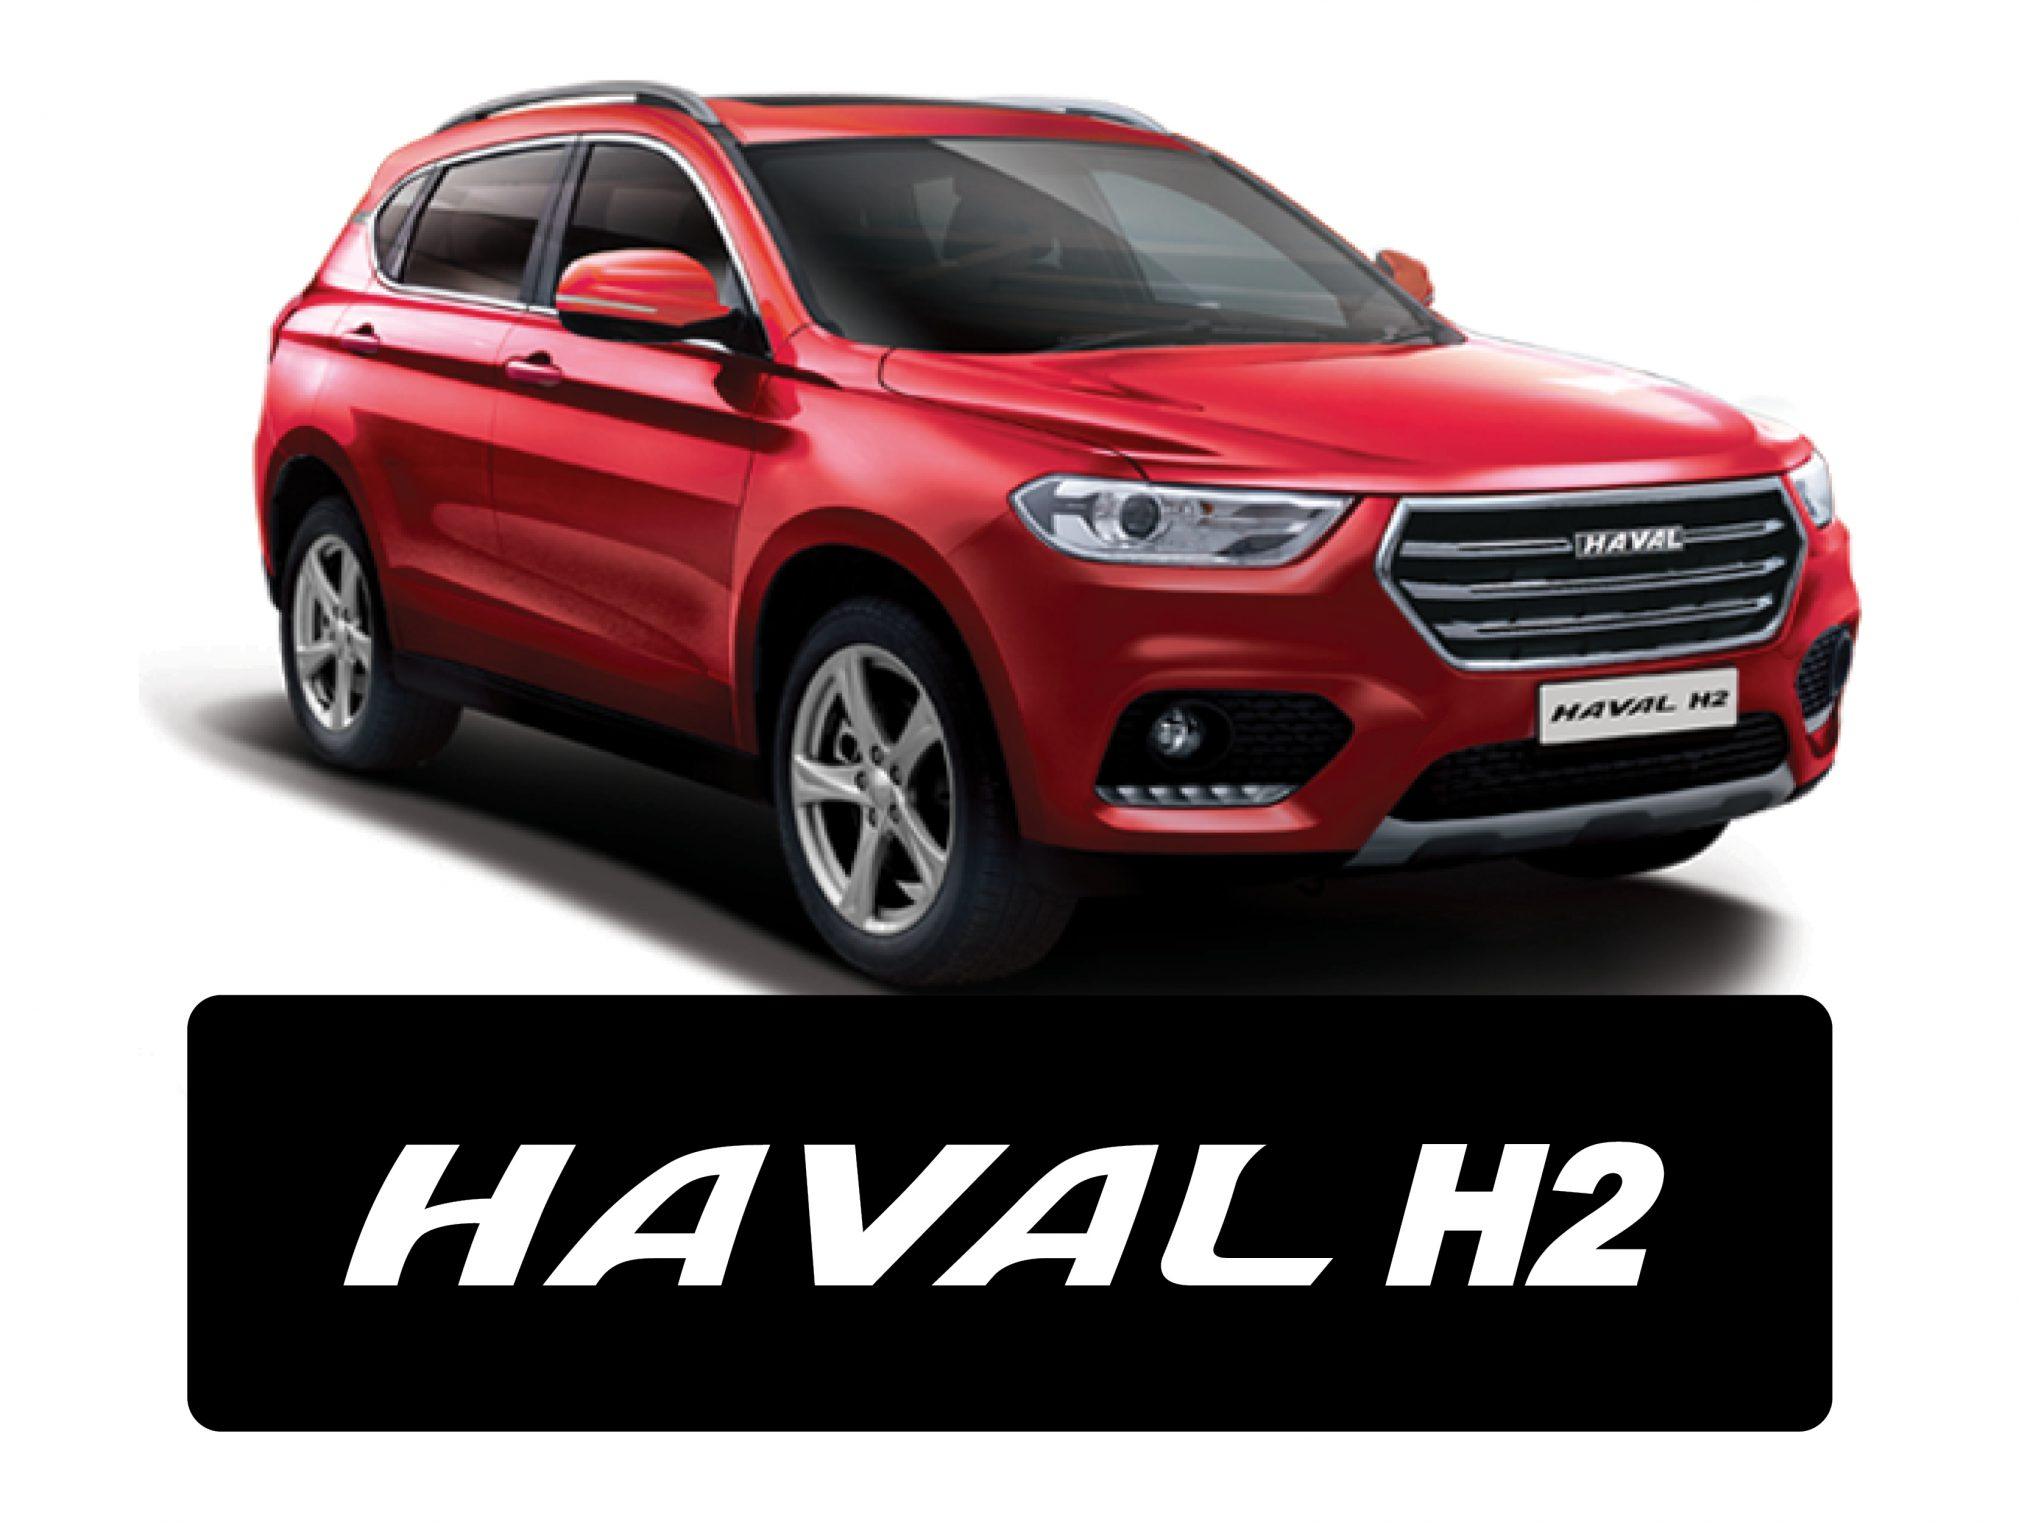 Thorp vehicle images - Haval2